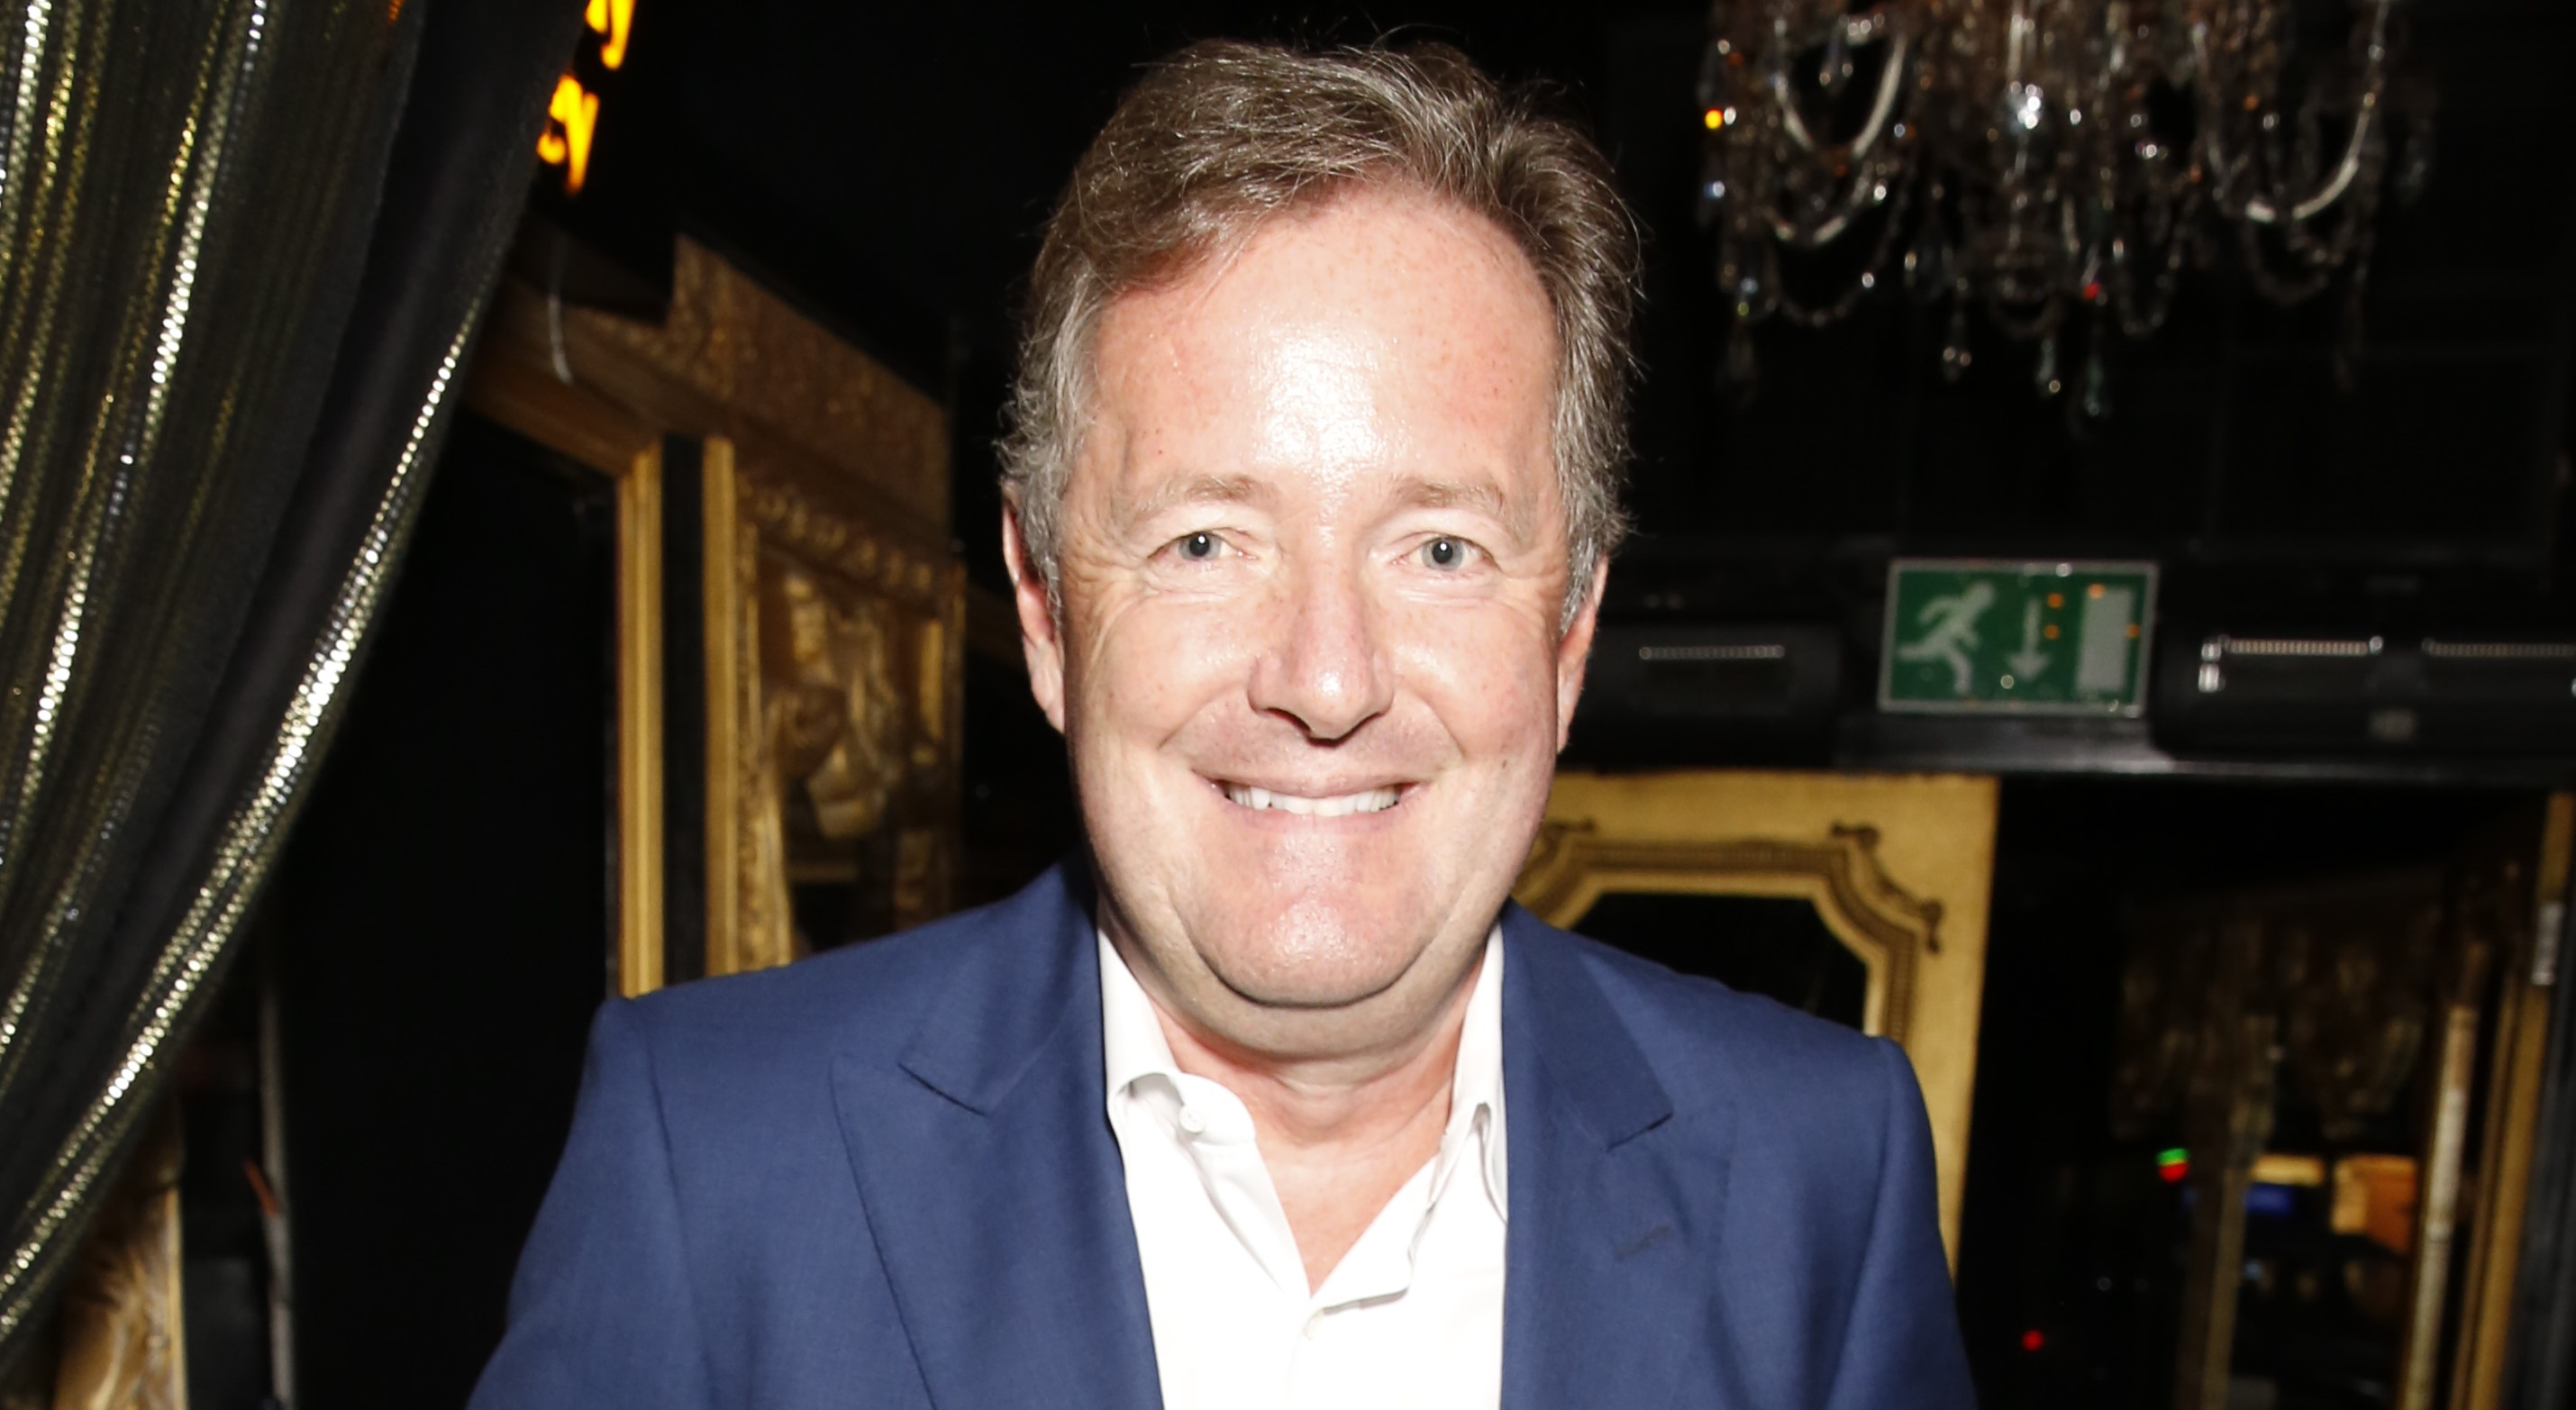 Piers Morgan stuns fans as he shows off his 'muscles' in Los Angeles